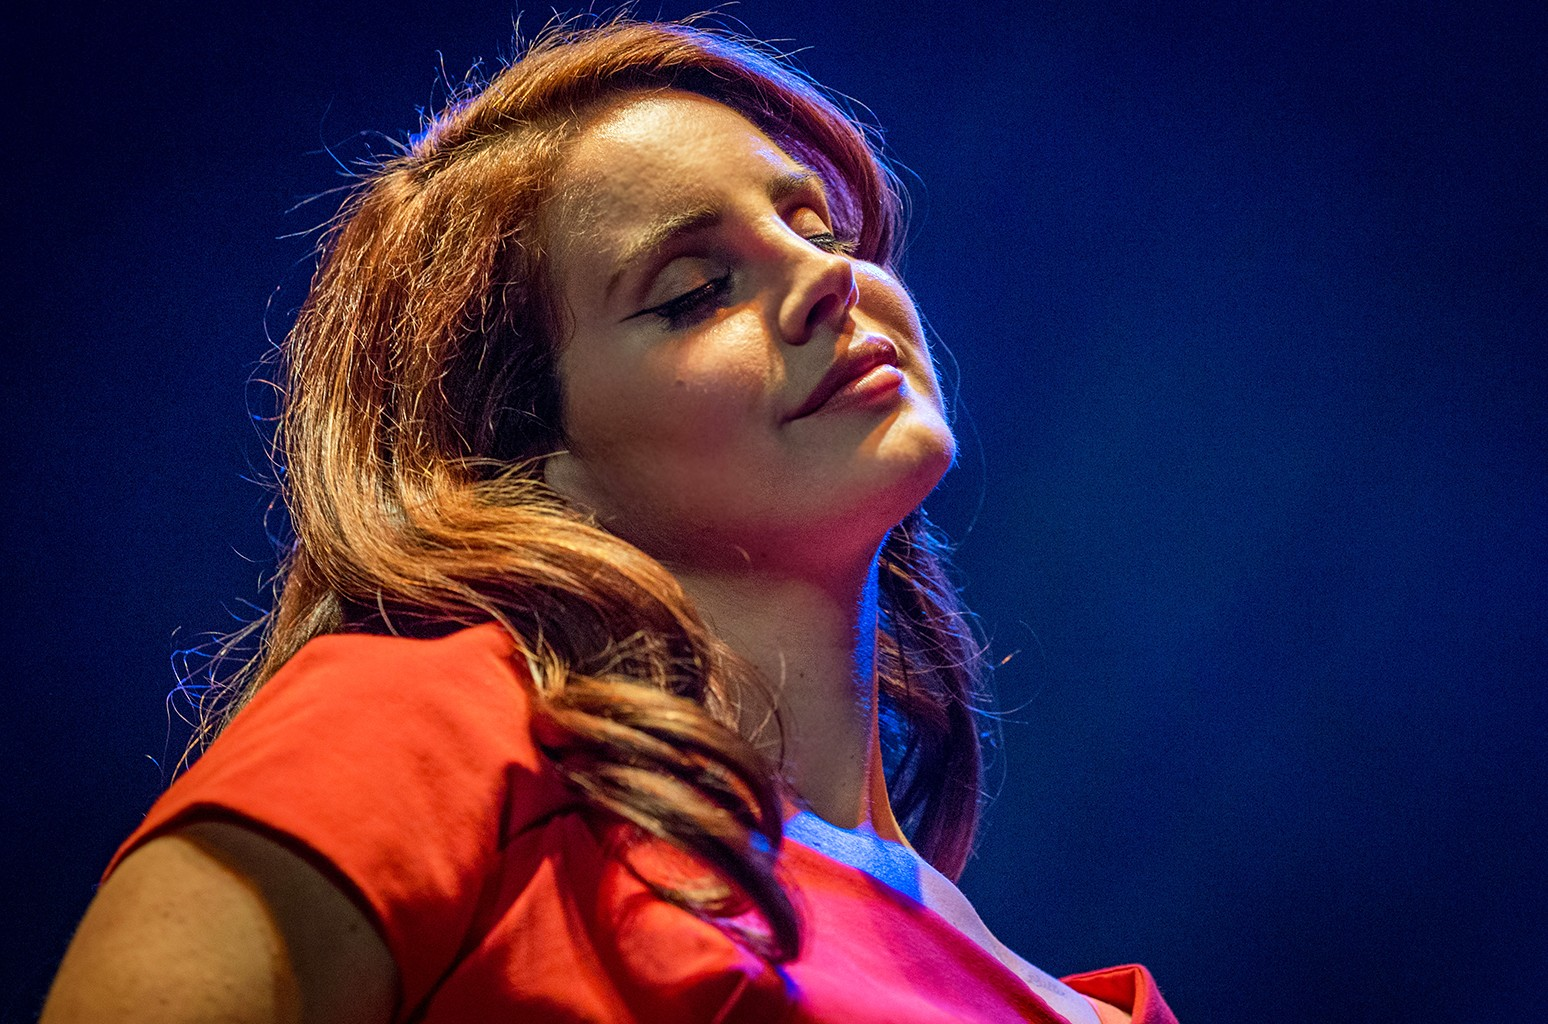 Lana Del Rey Reveals A 60s Vibe For Her Lust For Life Cover Art Billboard